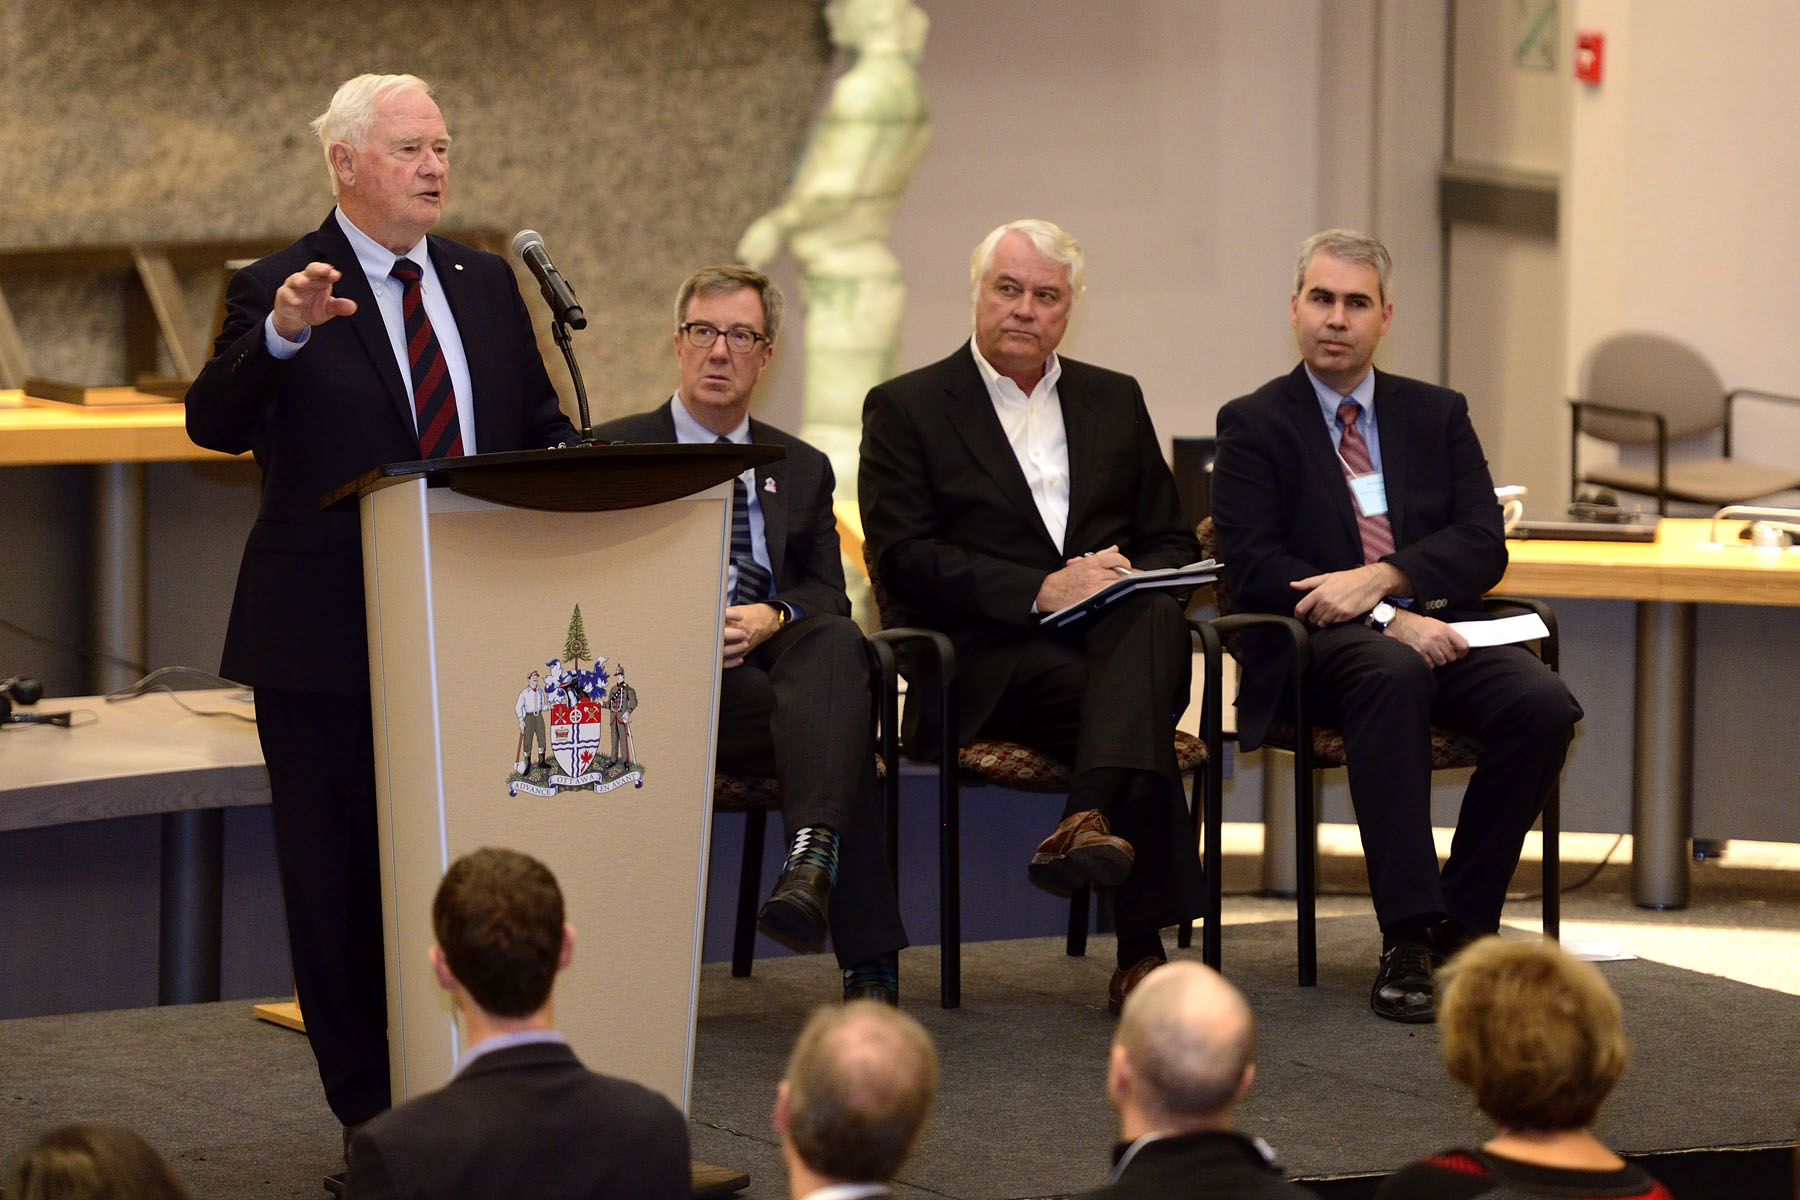 His Excellency the Right Honourable David Johnston, Governor General of Canada, delivered a keynote address at the City of Ottawa's Education and the Economy Summit, on October 21, 2016, at  Andrew S. Haydon Hall, City Hall, Ottawa.